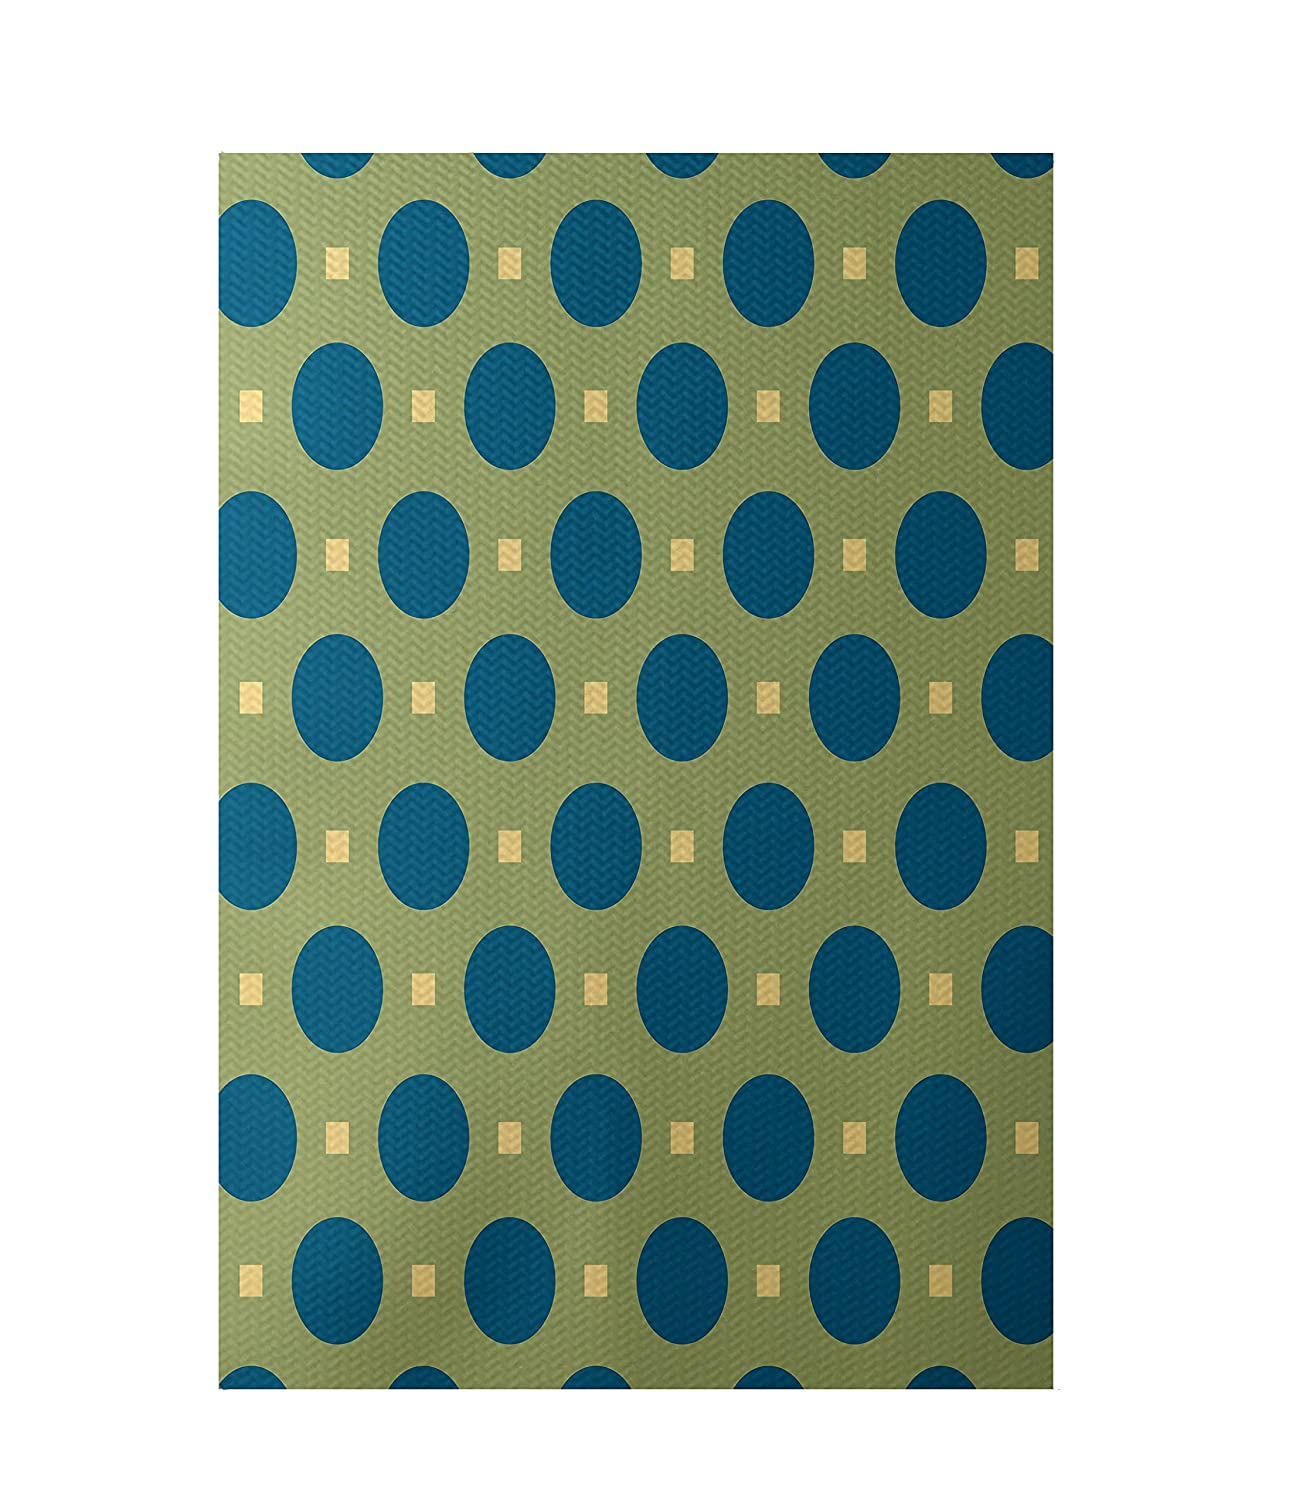 Apple E by design RGN184GR17BL11-23 Dash Geometric Print Indoor//Outdoor Rug